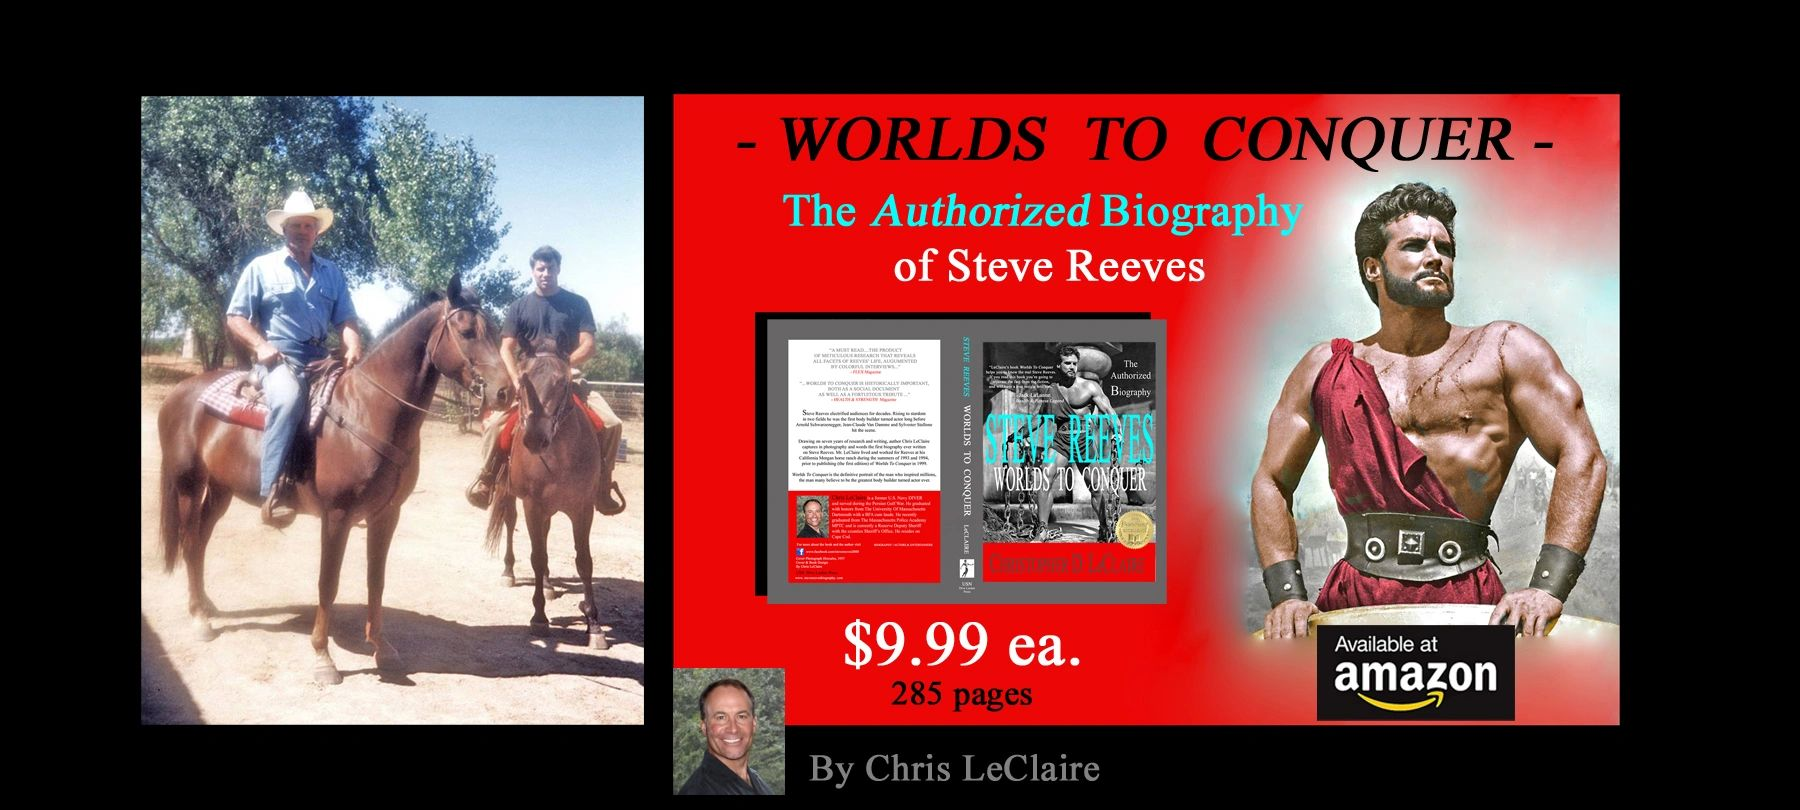 Steve Reeves photo, biography of actor and bodybuilder